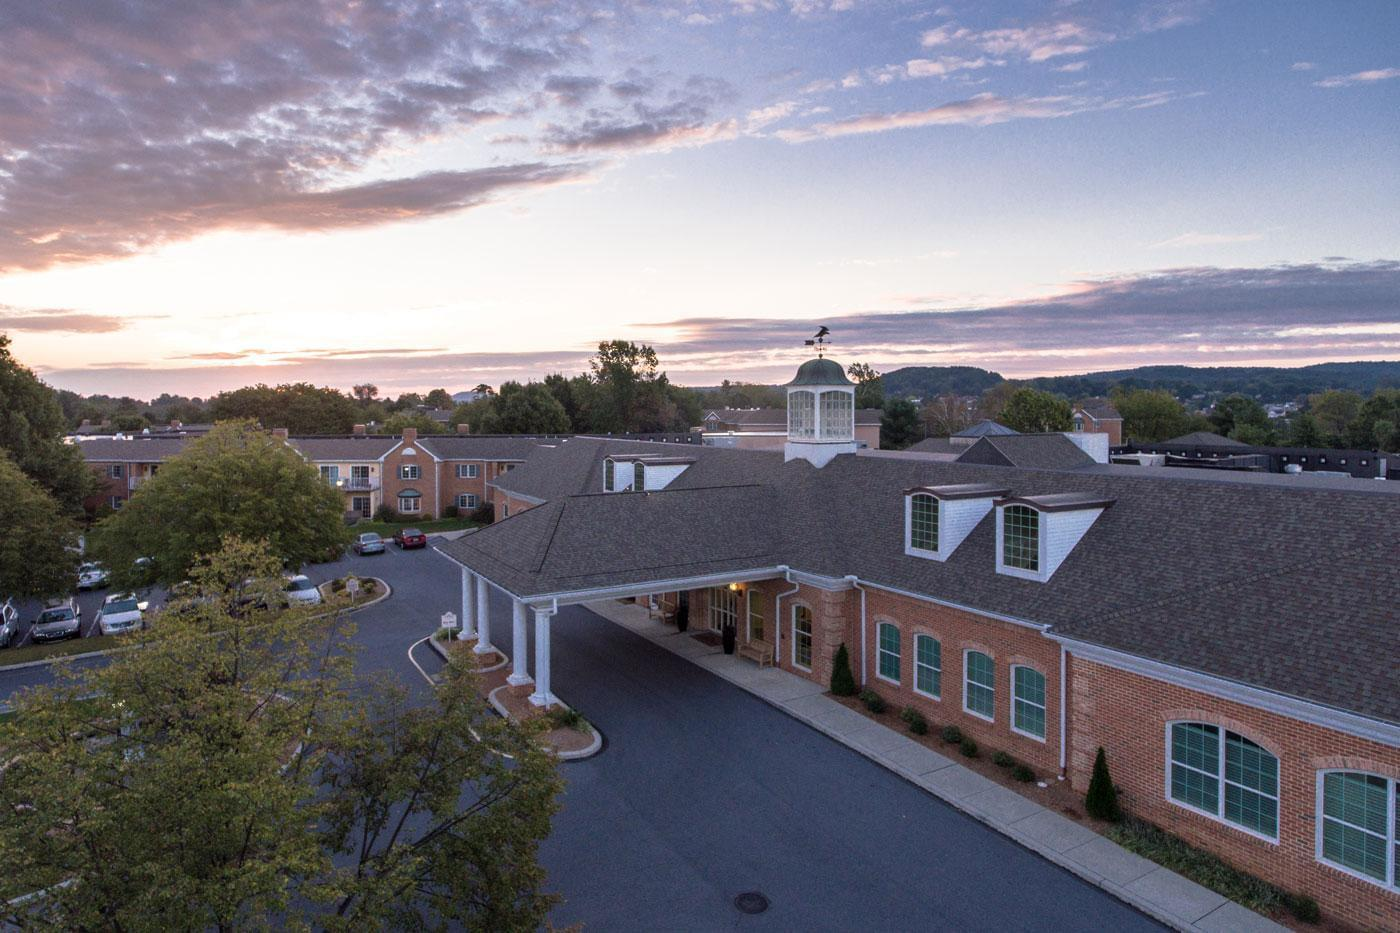 Photo of The Highlands at Wyomissing, Assisted Living, Nursing Home, Independent Living, CCRC, Wyomissing, PA 1